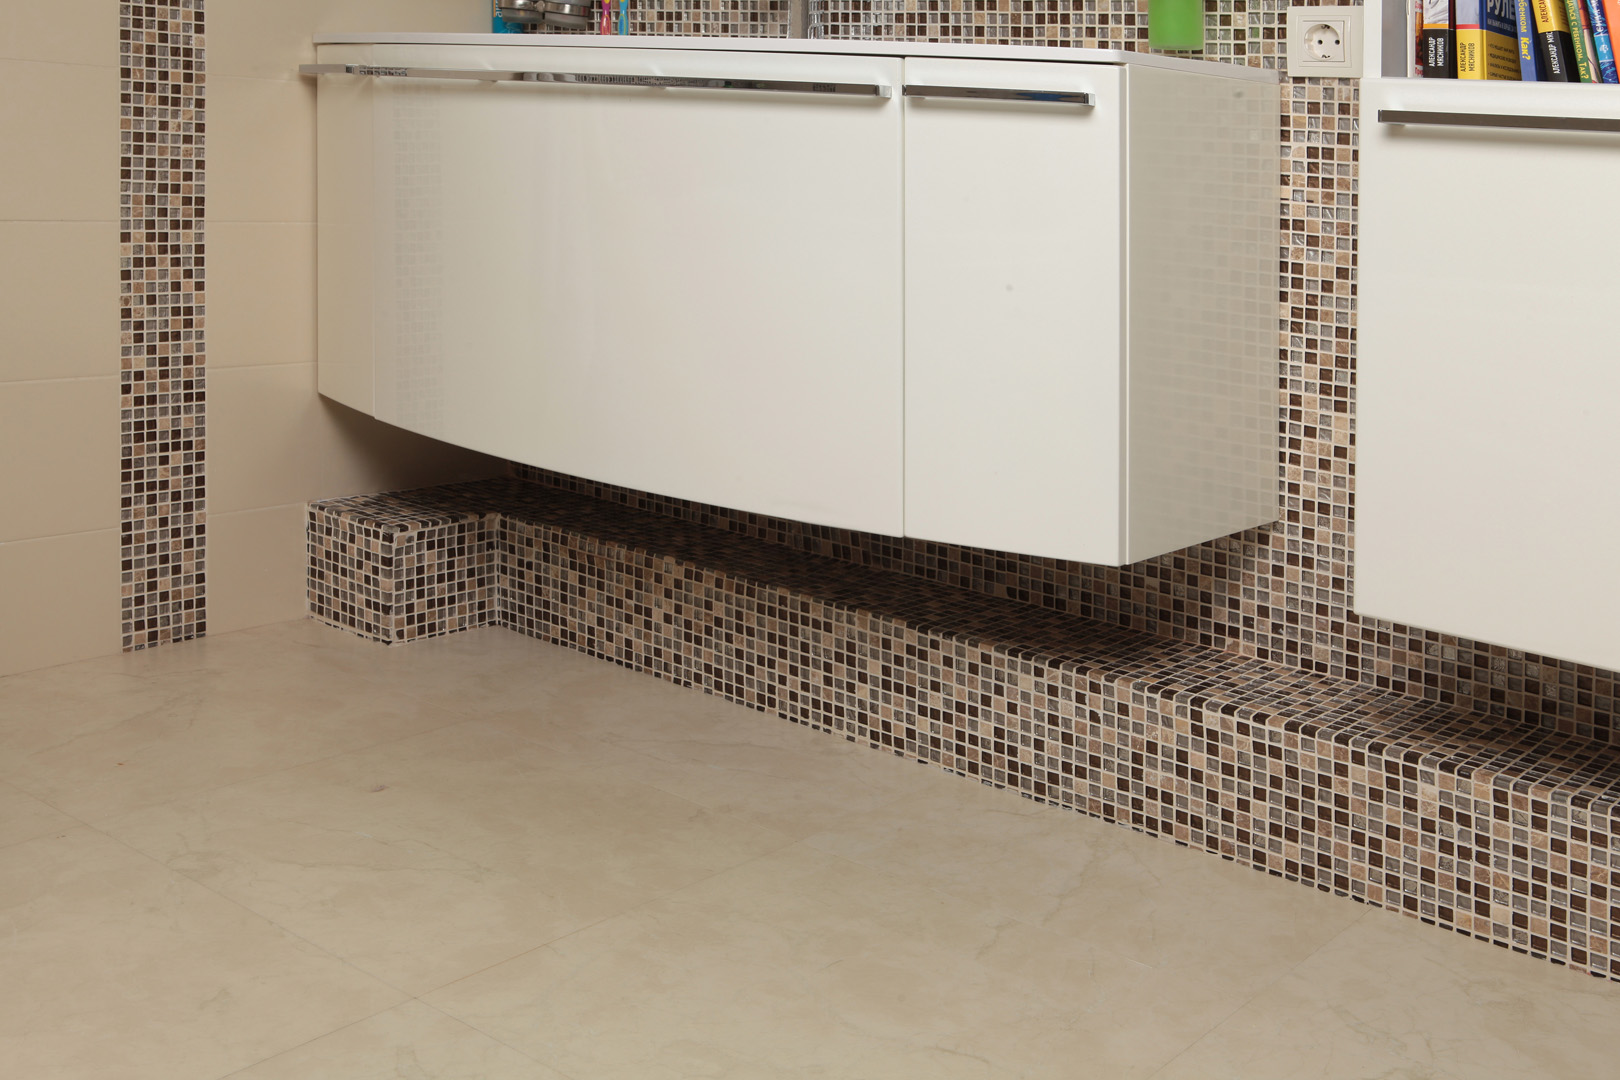 Decoria Office Tile DMS 261 Мрамор Анды